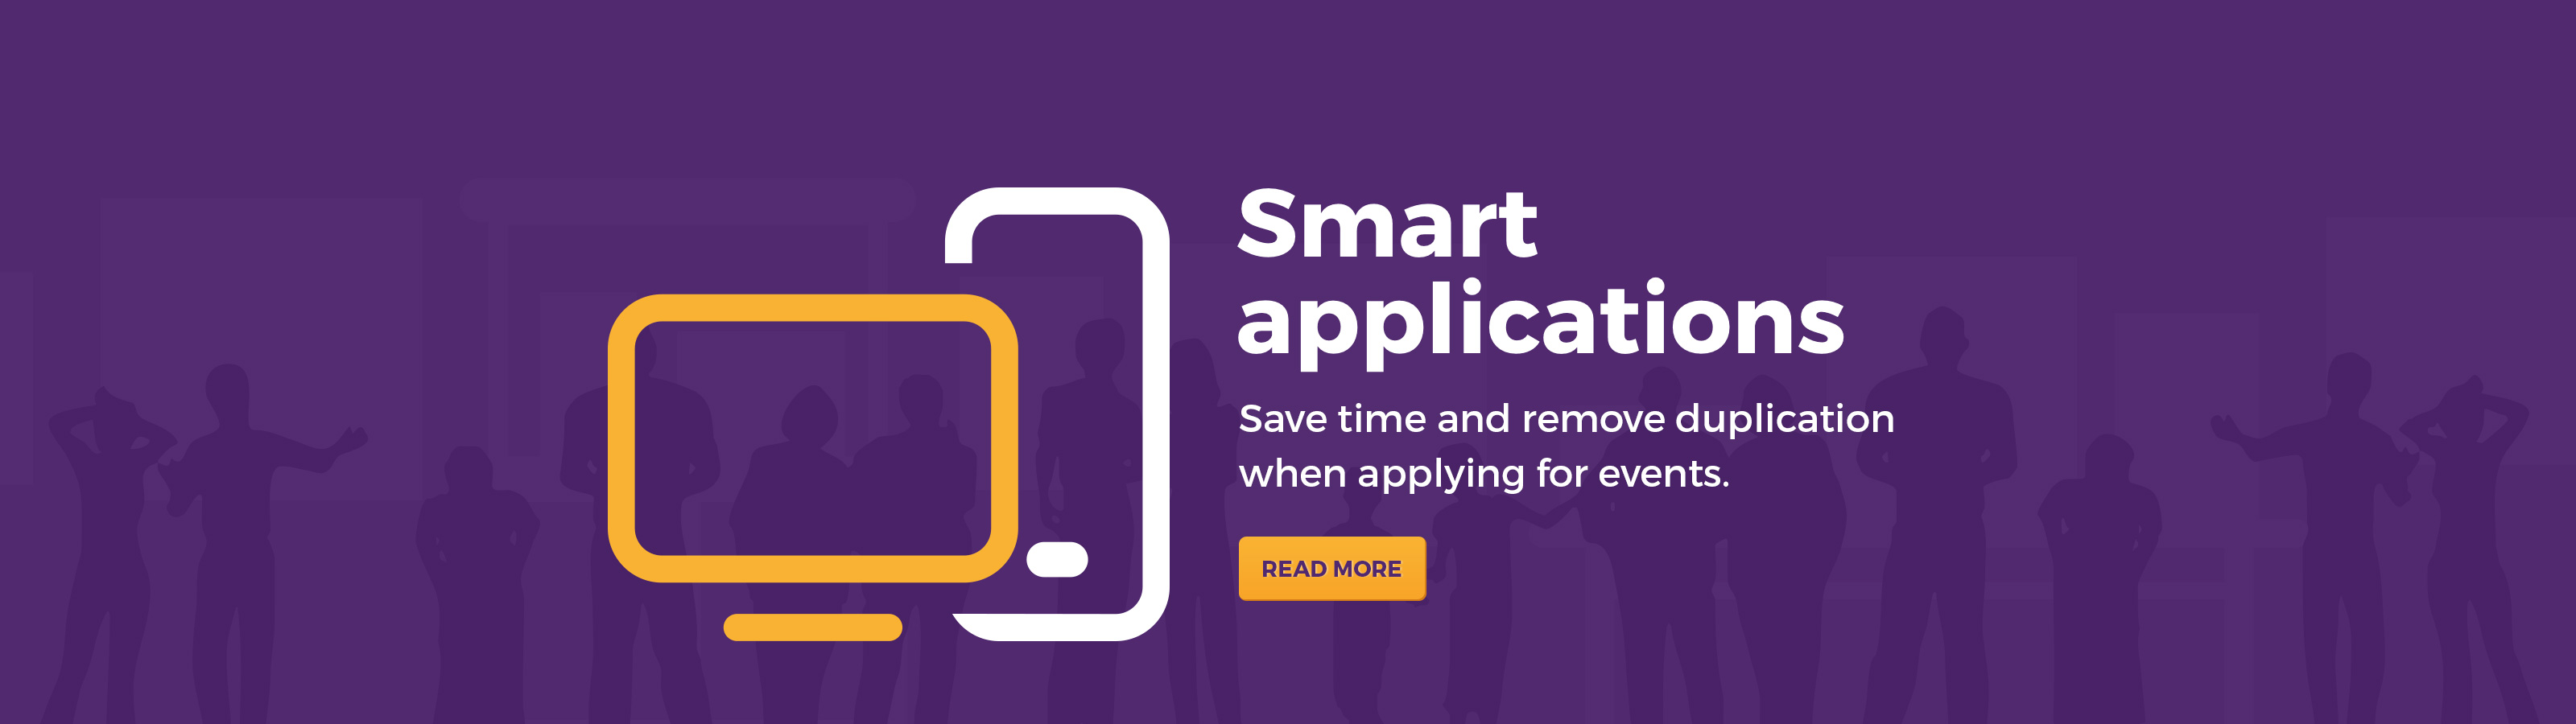 Smart applications